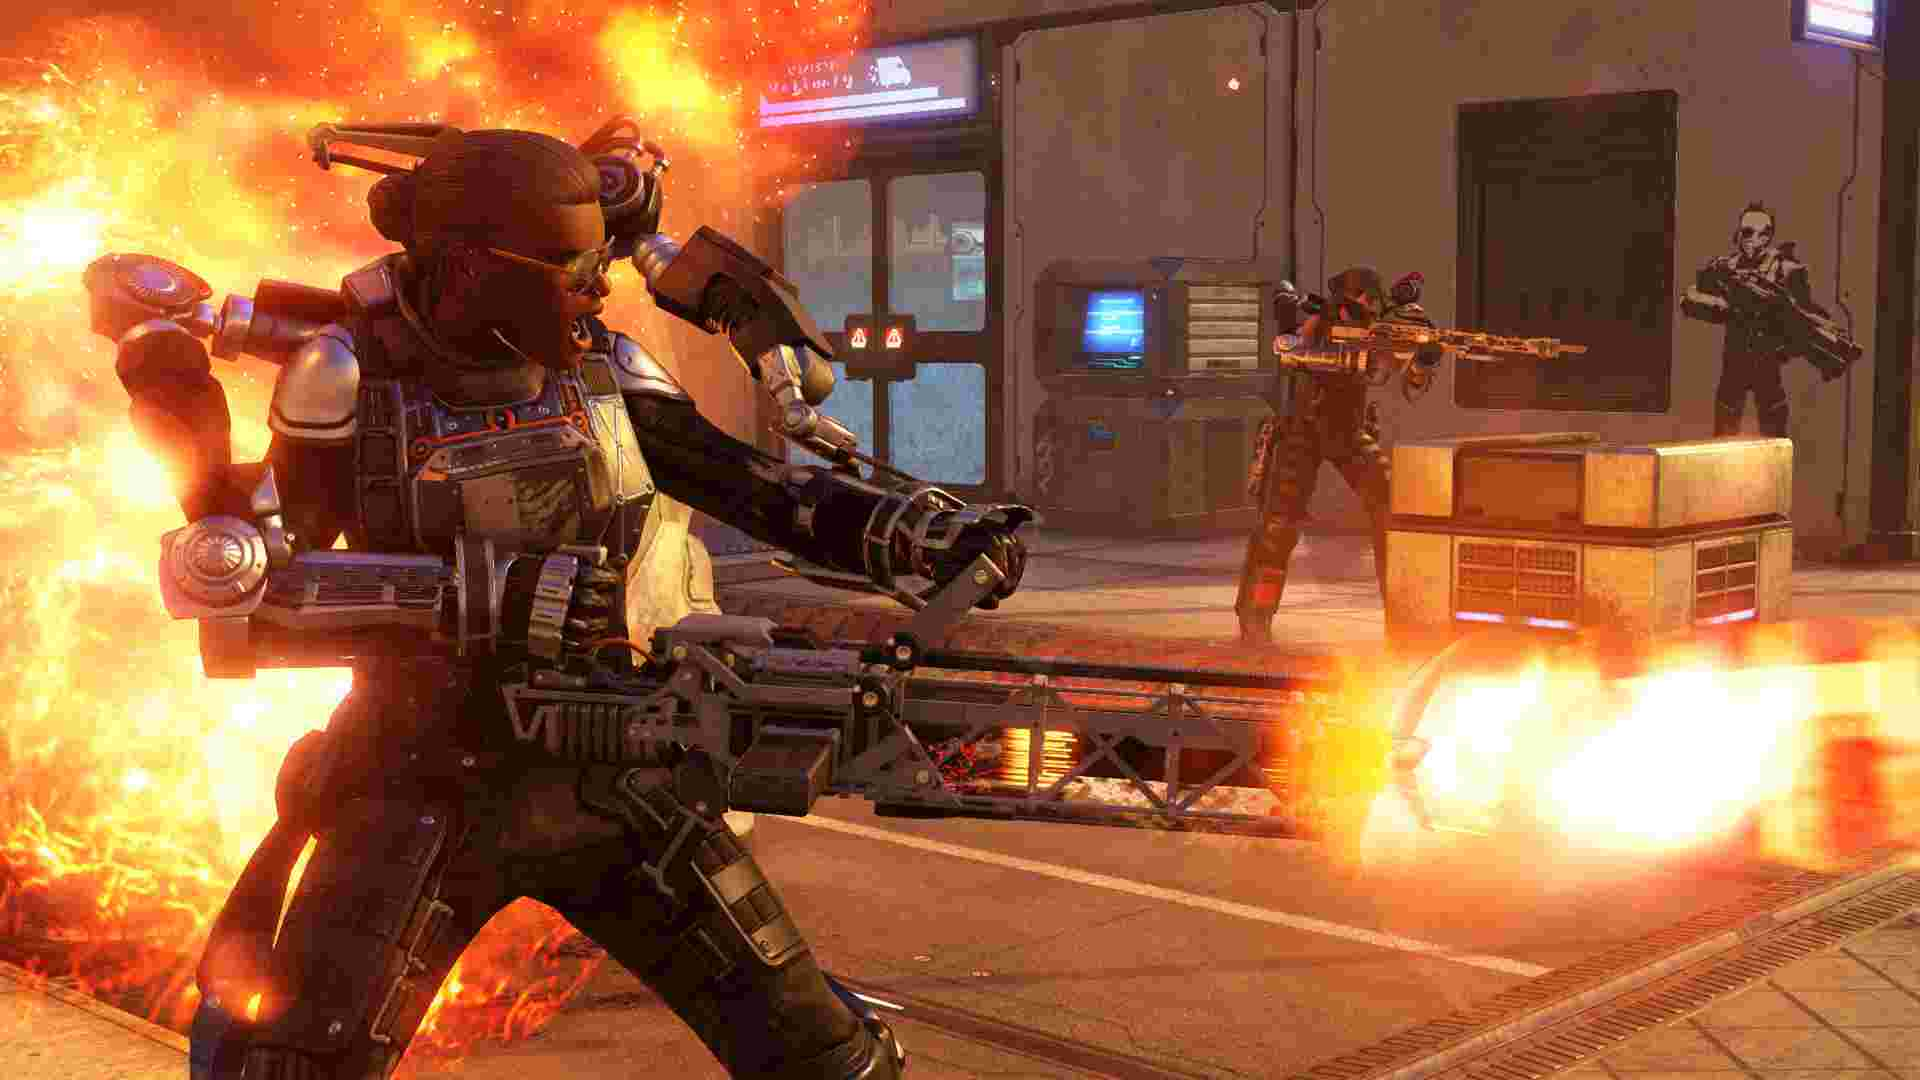 1454668352-xcom-2-review-screenshots-soldiers-mag-cannon